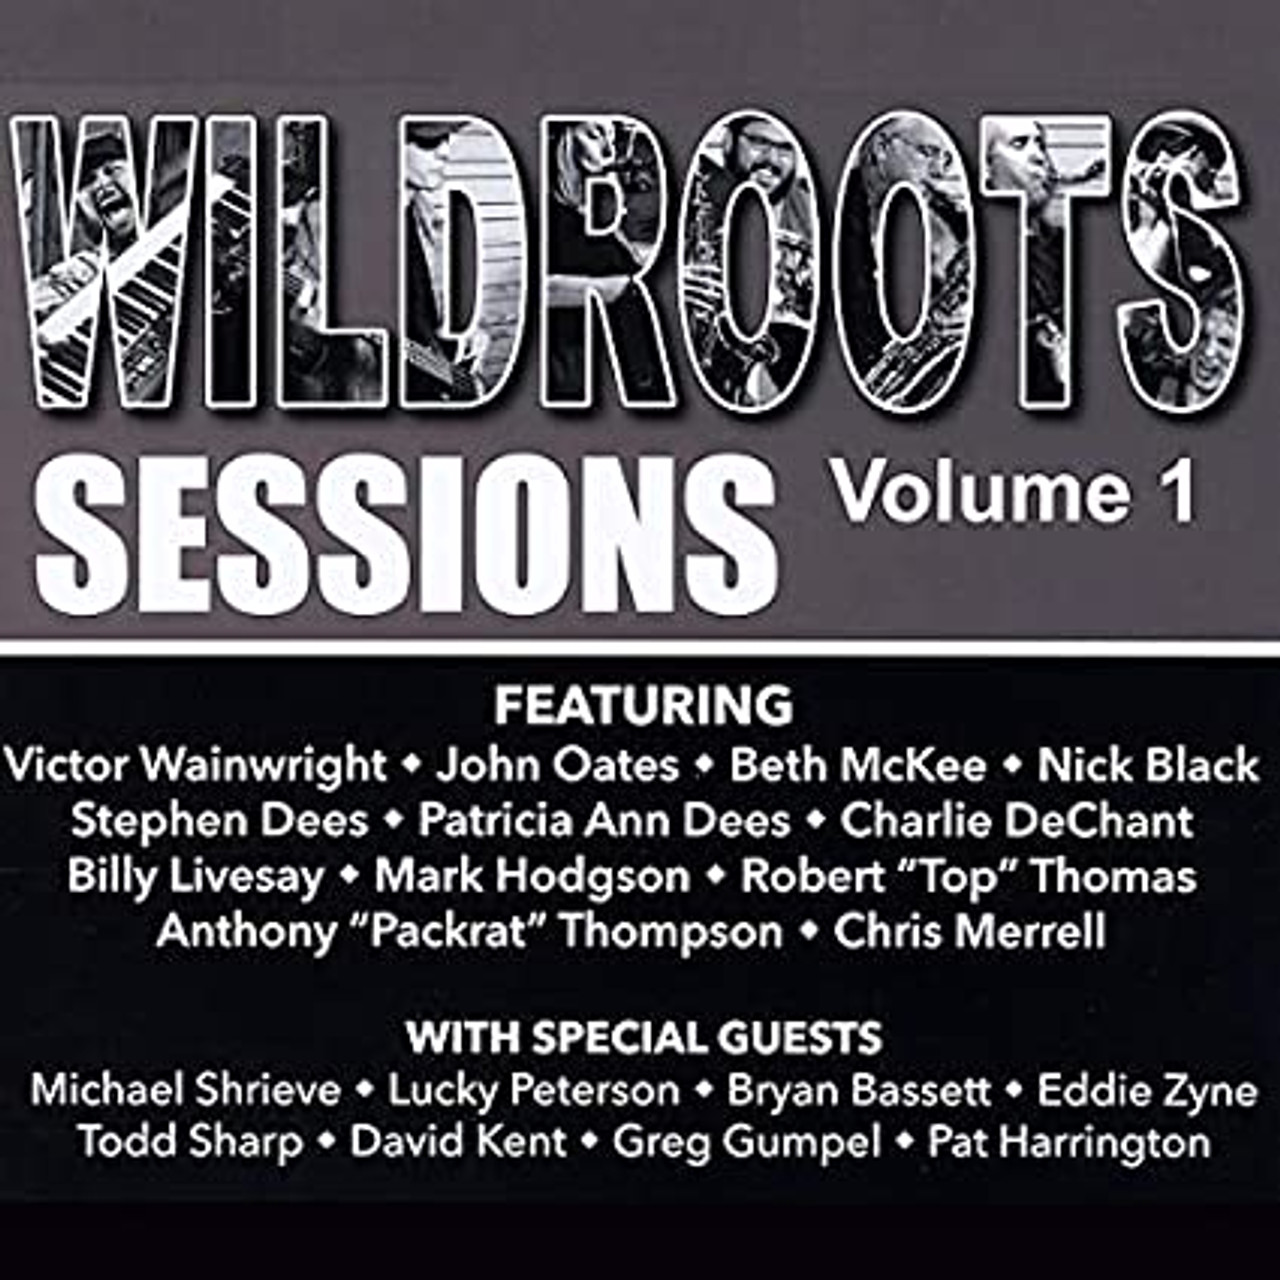 WILDROOTS SESSION VOL 1 FEATURING VICTOR WAINWRIGHT